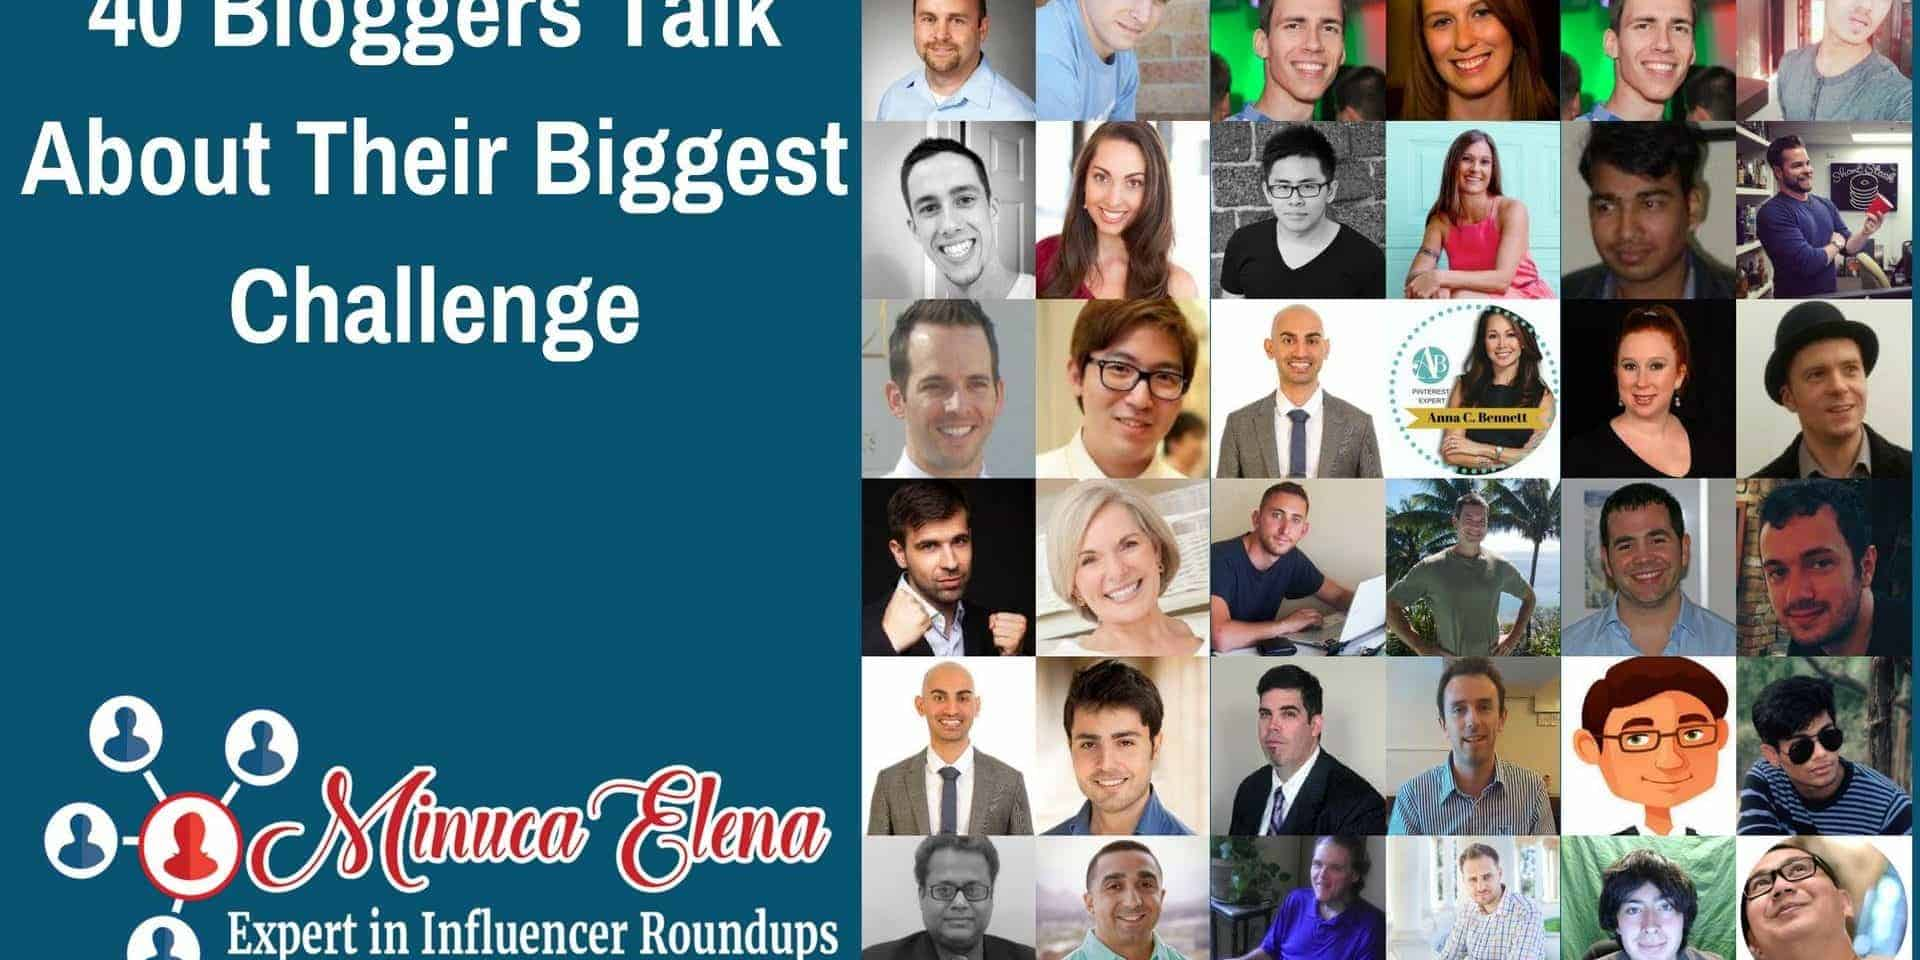 40+ Bloggers Talk About Their Biggest Challenge